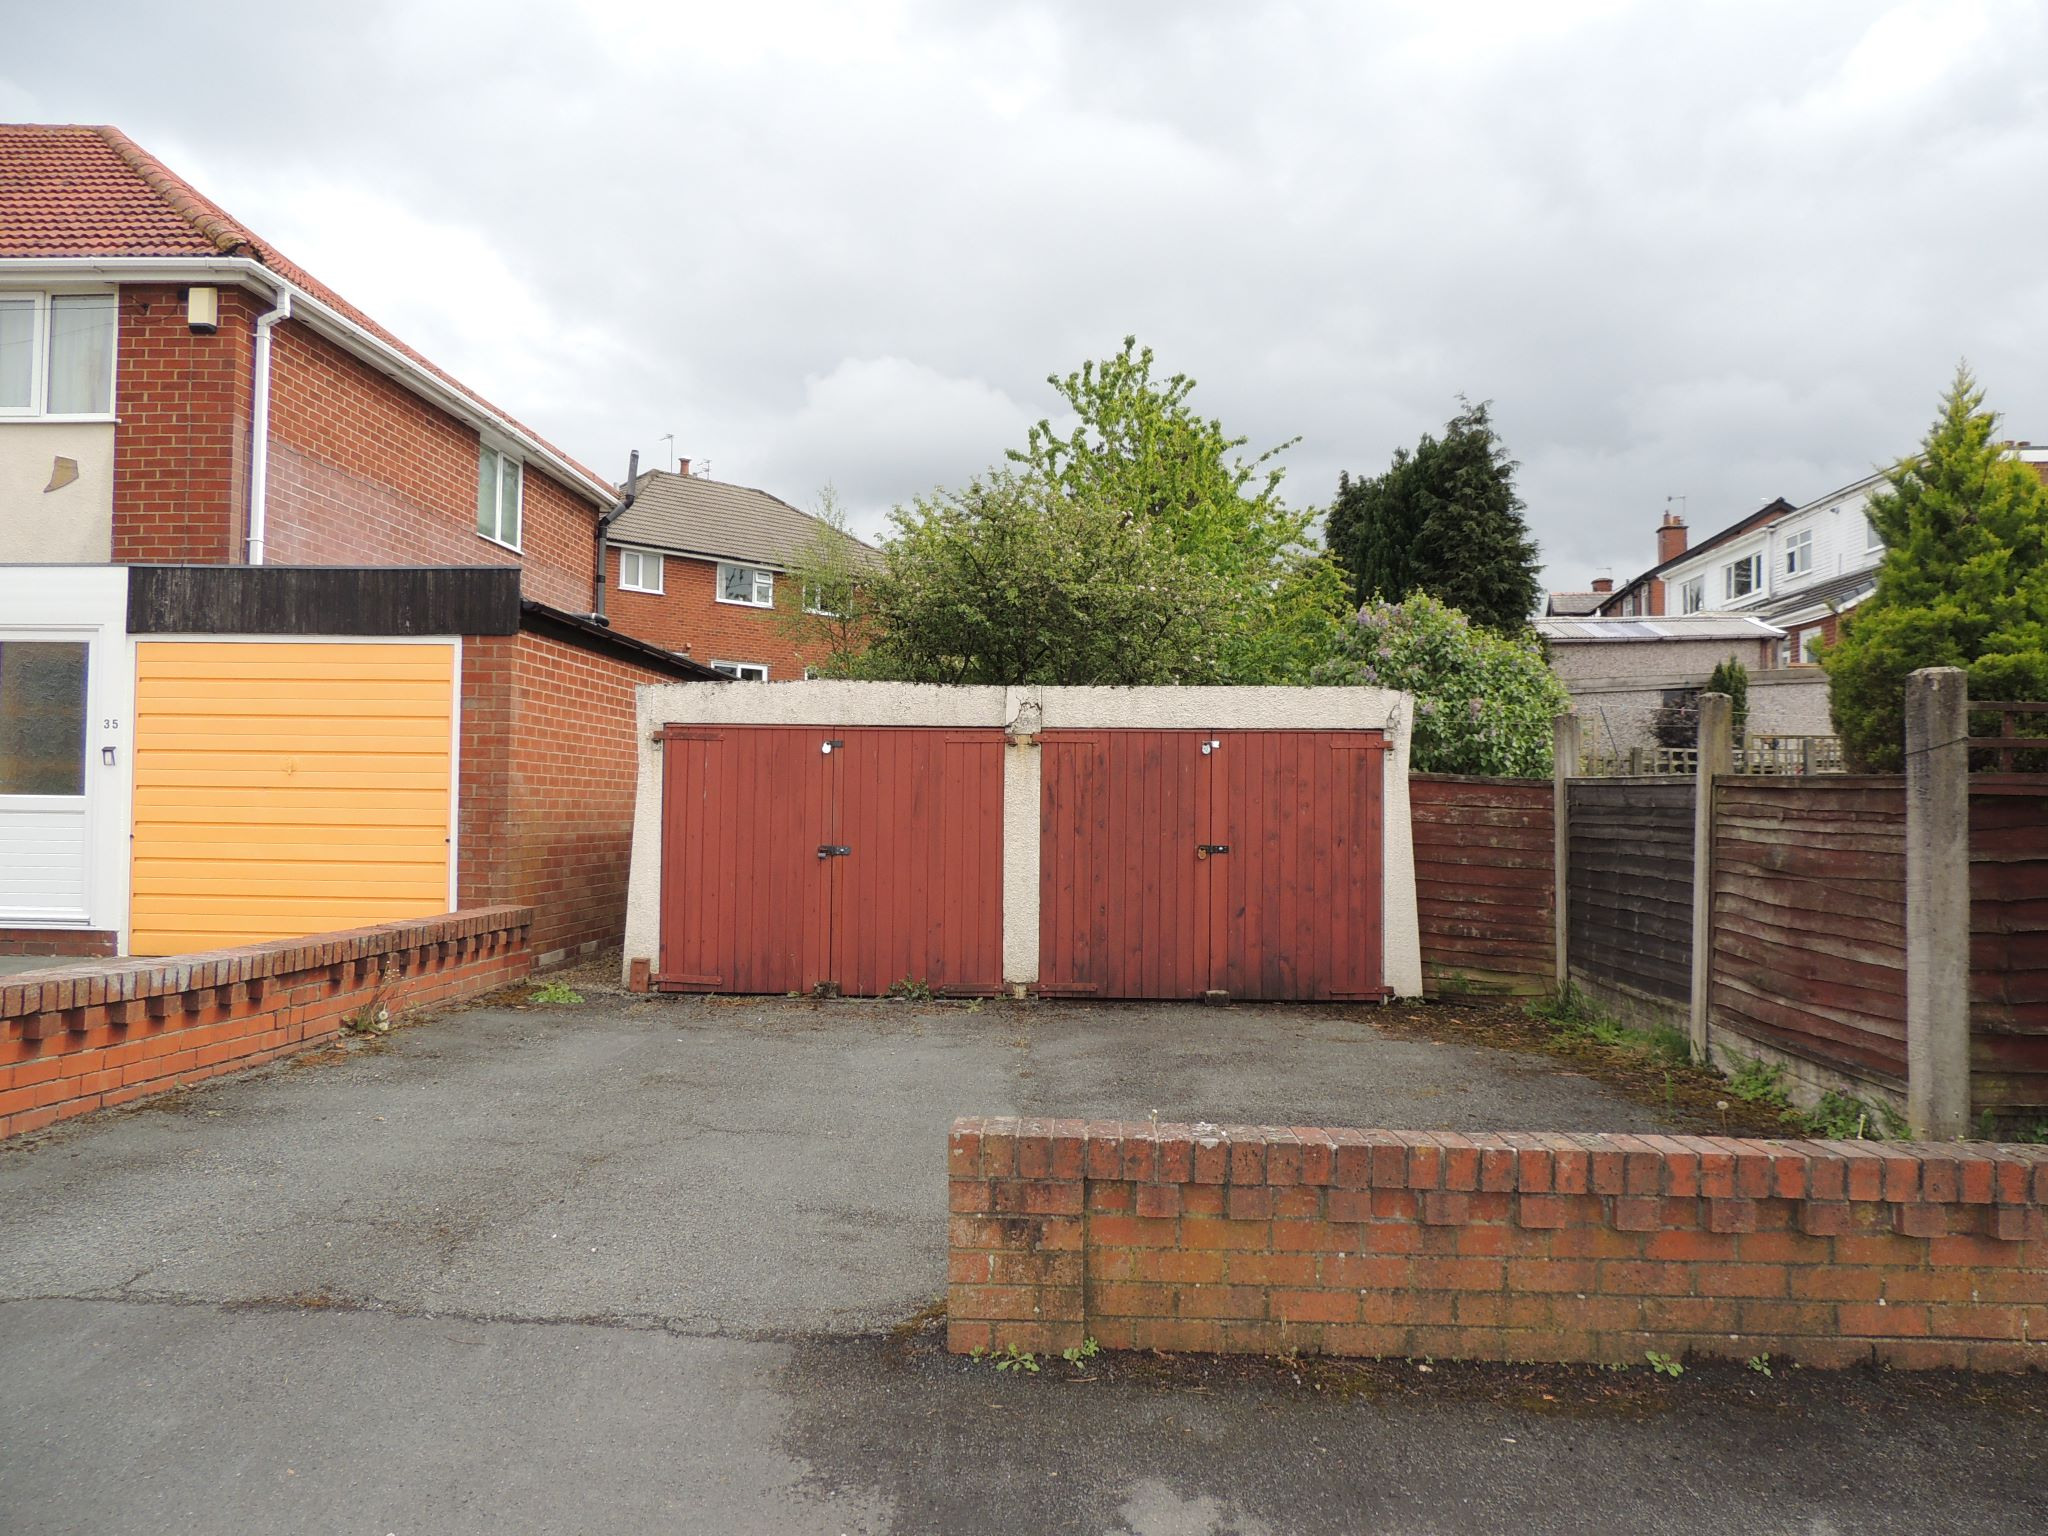 3 bedroom semi-detached bungalow To Let in Chorley - Property photograph